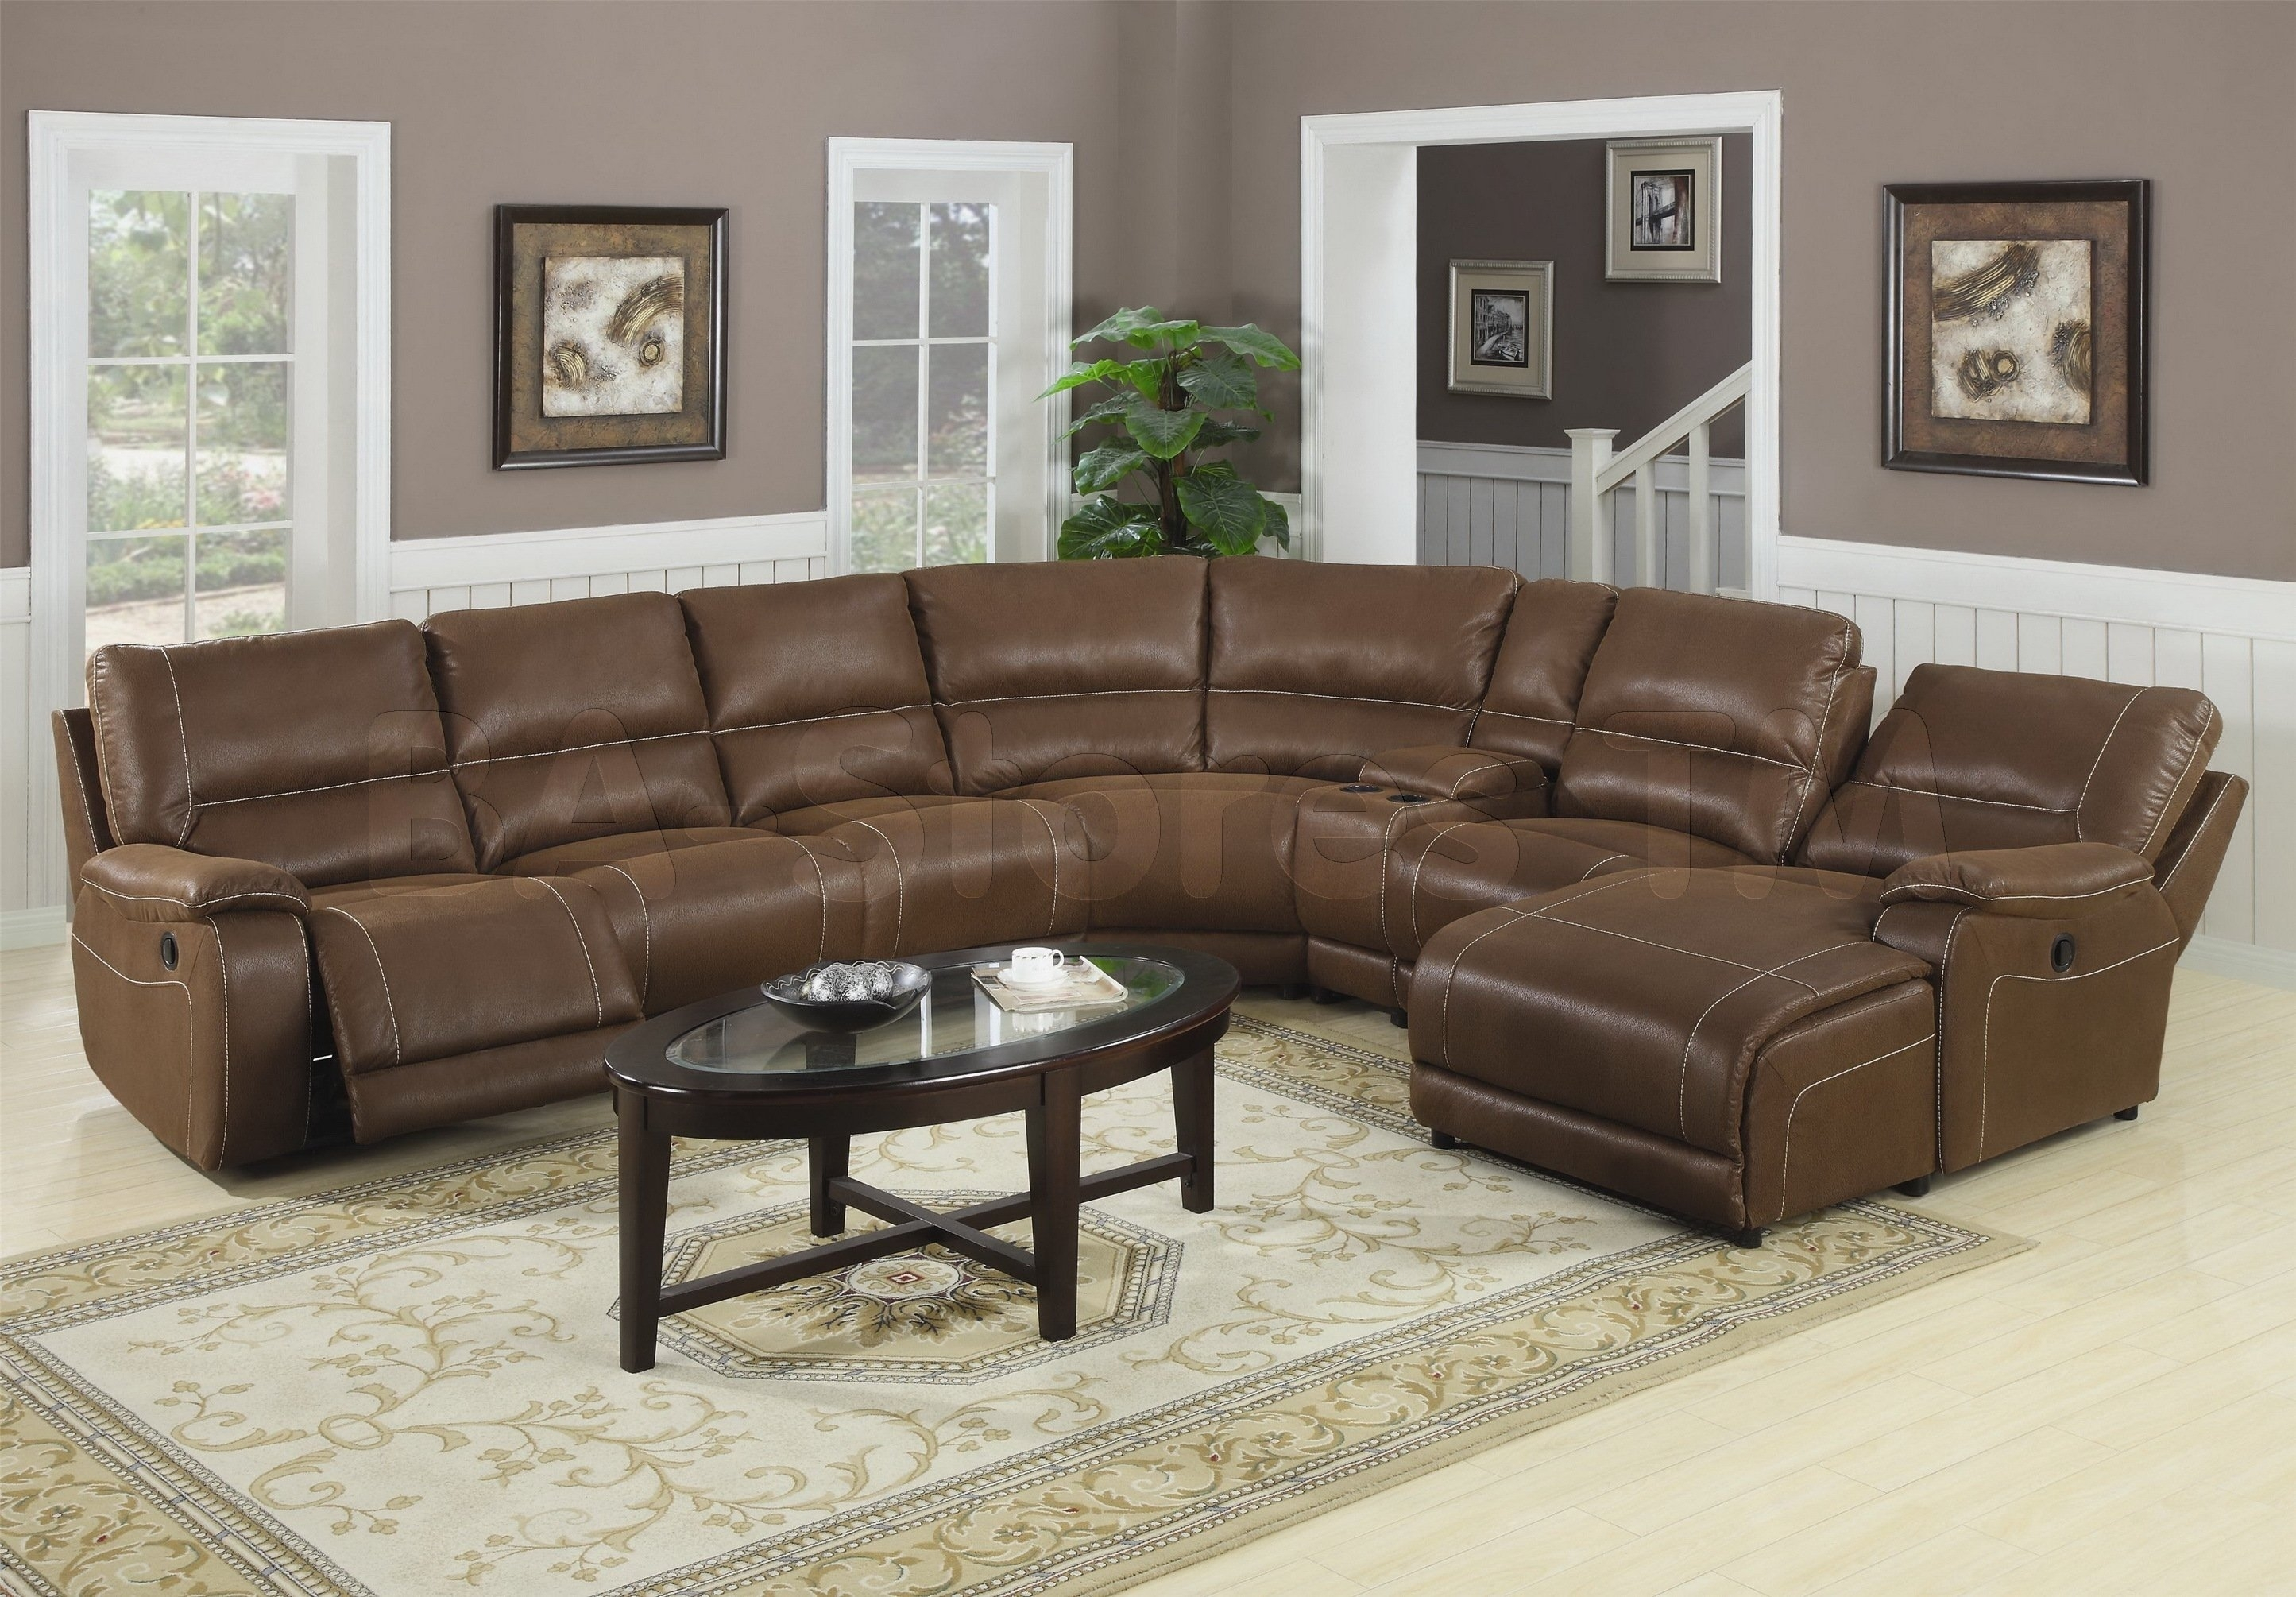 Magnificent Large Sectional Sofas — The Kienandsweet Furnitures in Wide Sectional Sofas (Image 8 of 10)